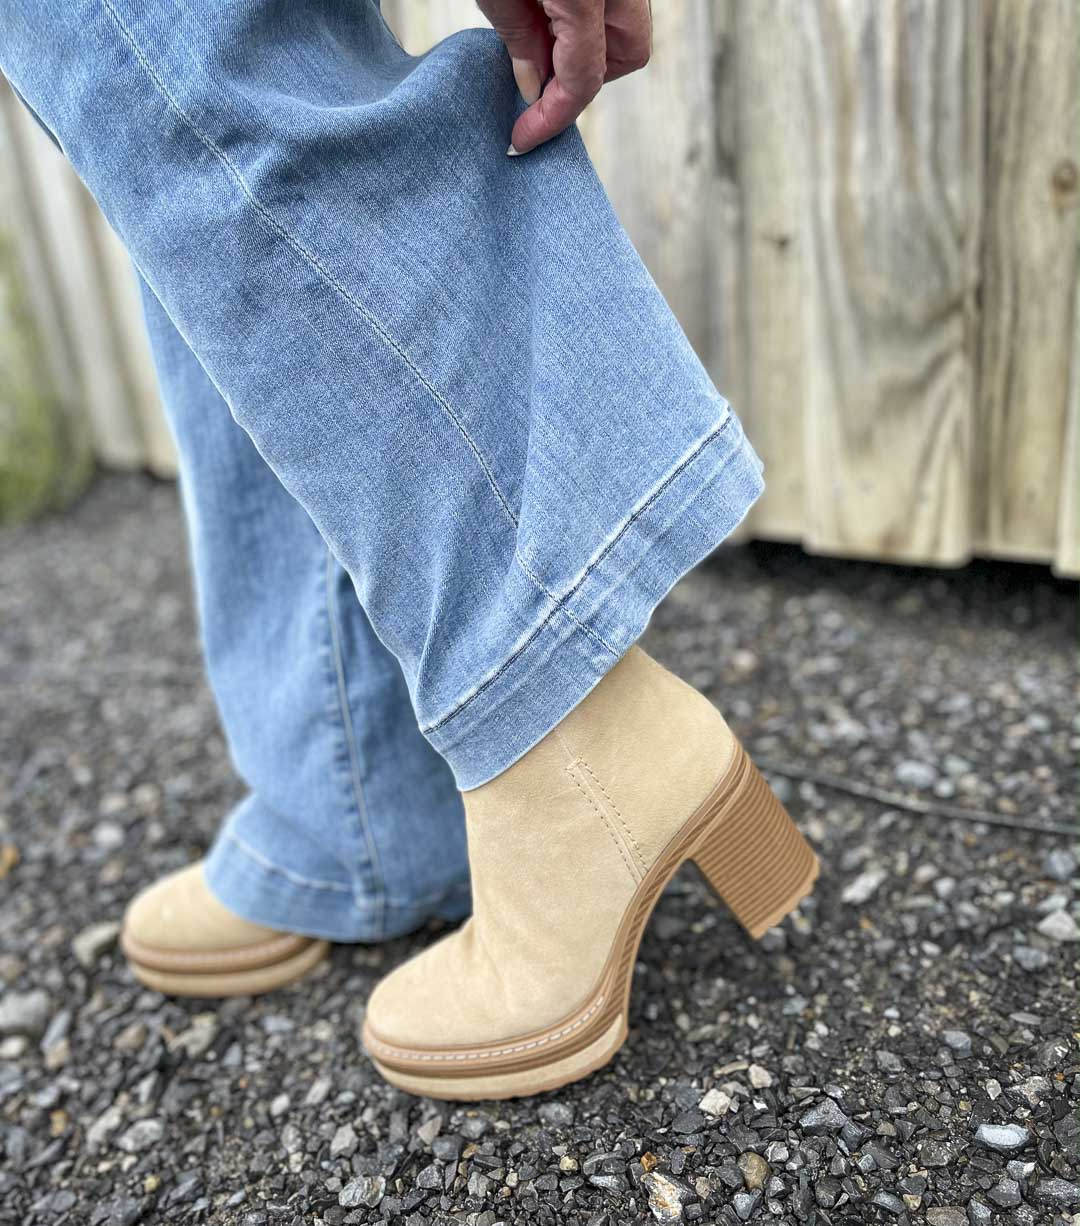 Over 40 Fashion Blogger, Tania Stephens, is wearing a pair of flare jeans and showing her Steve Madden platform boots